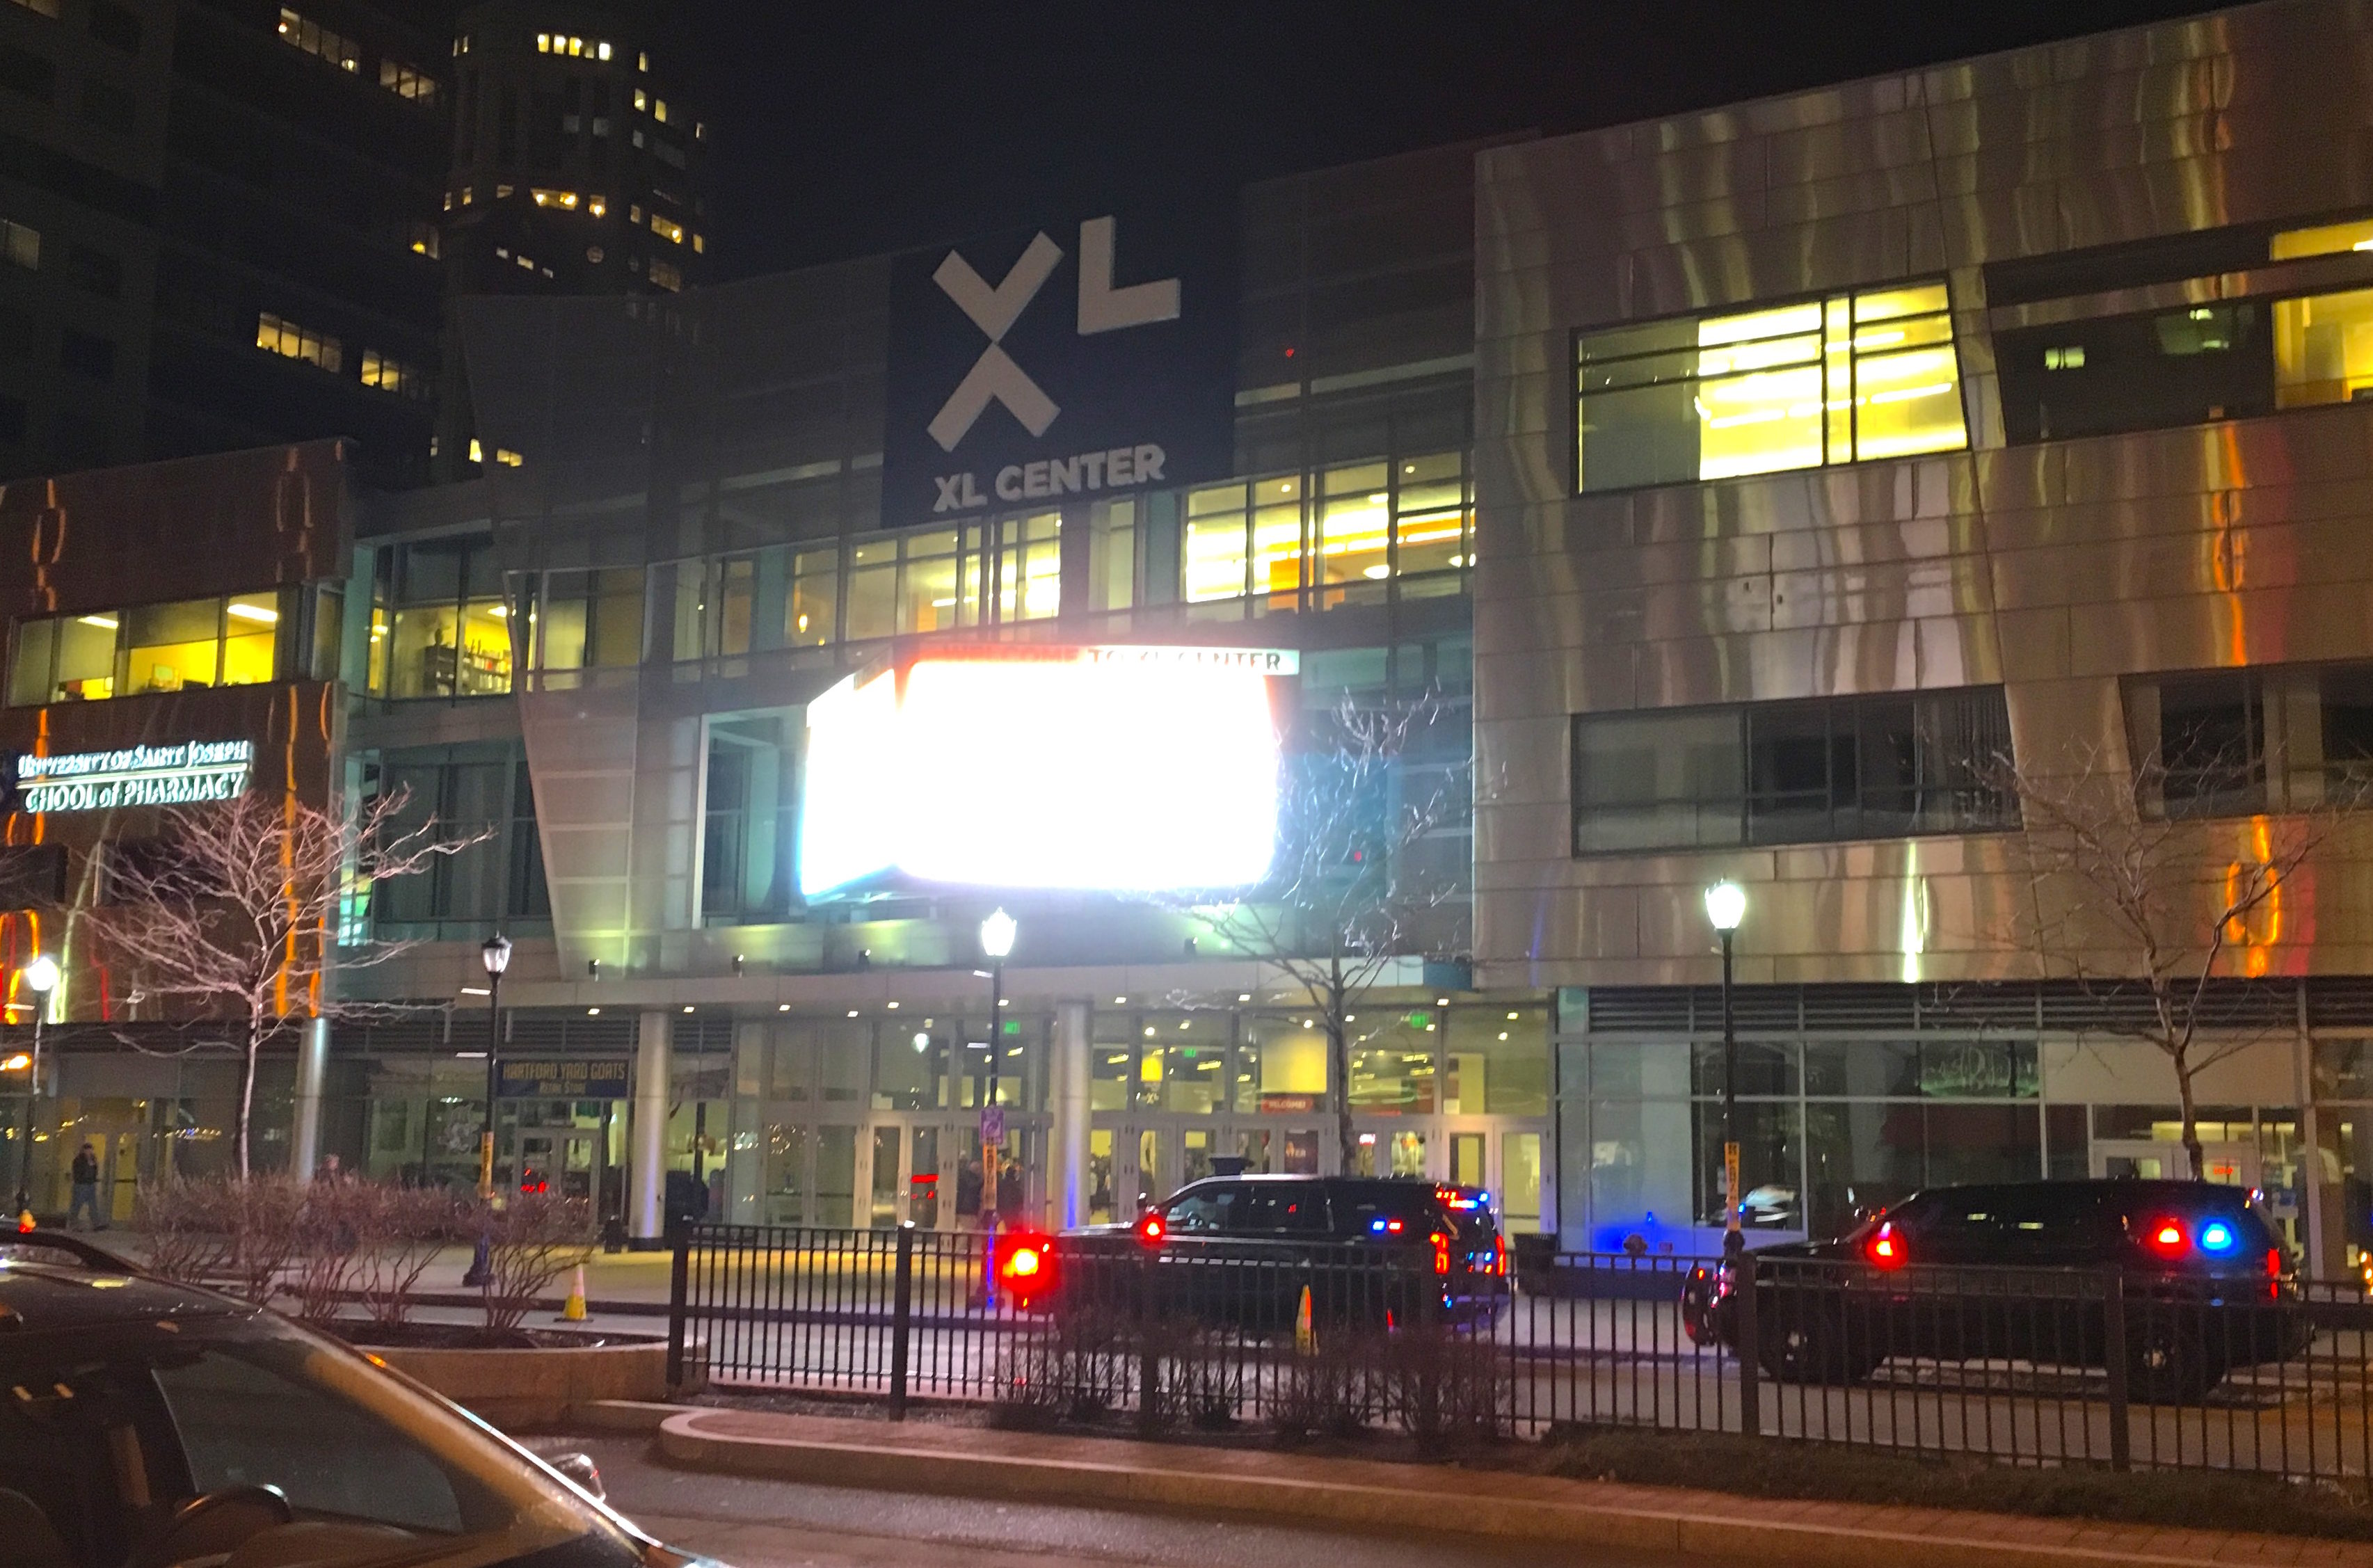 Funds for XL Center, crumbling foundations in $3.5B bond package